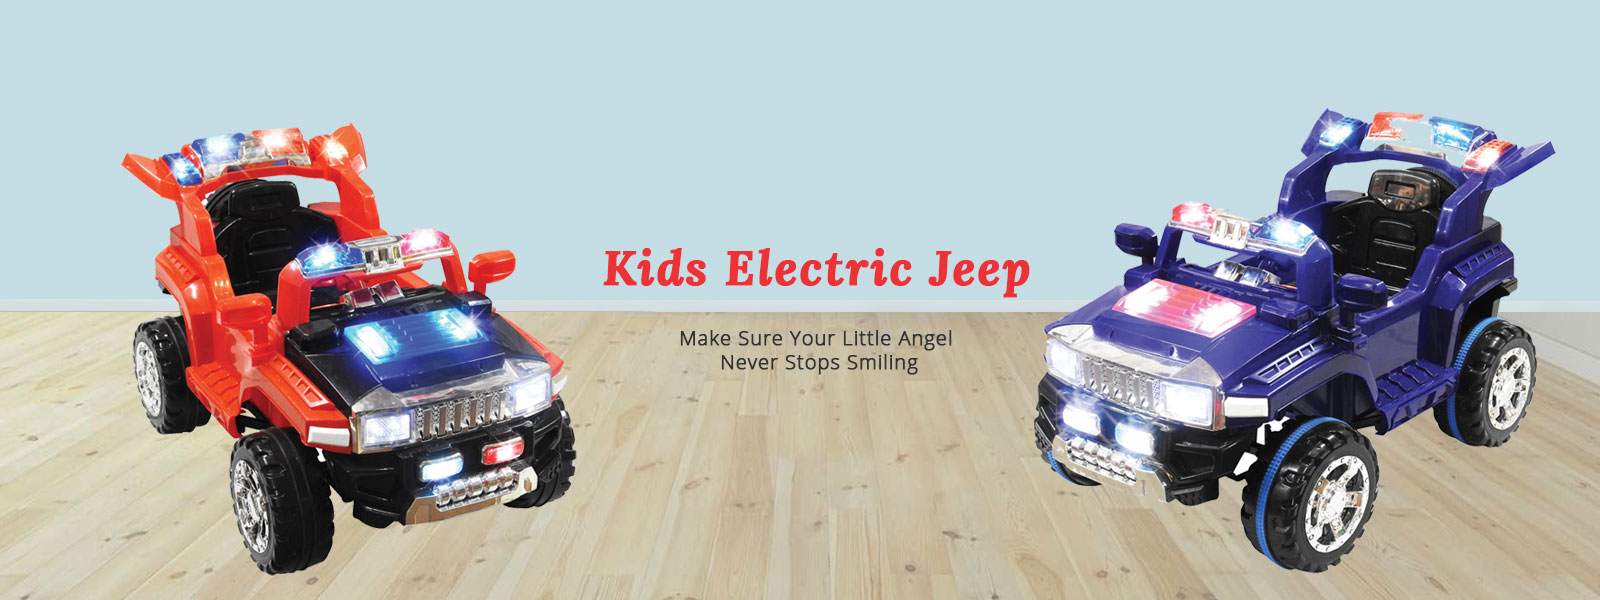 Kids Electric Jeep Manufacturers in Noida